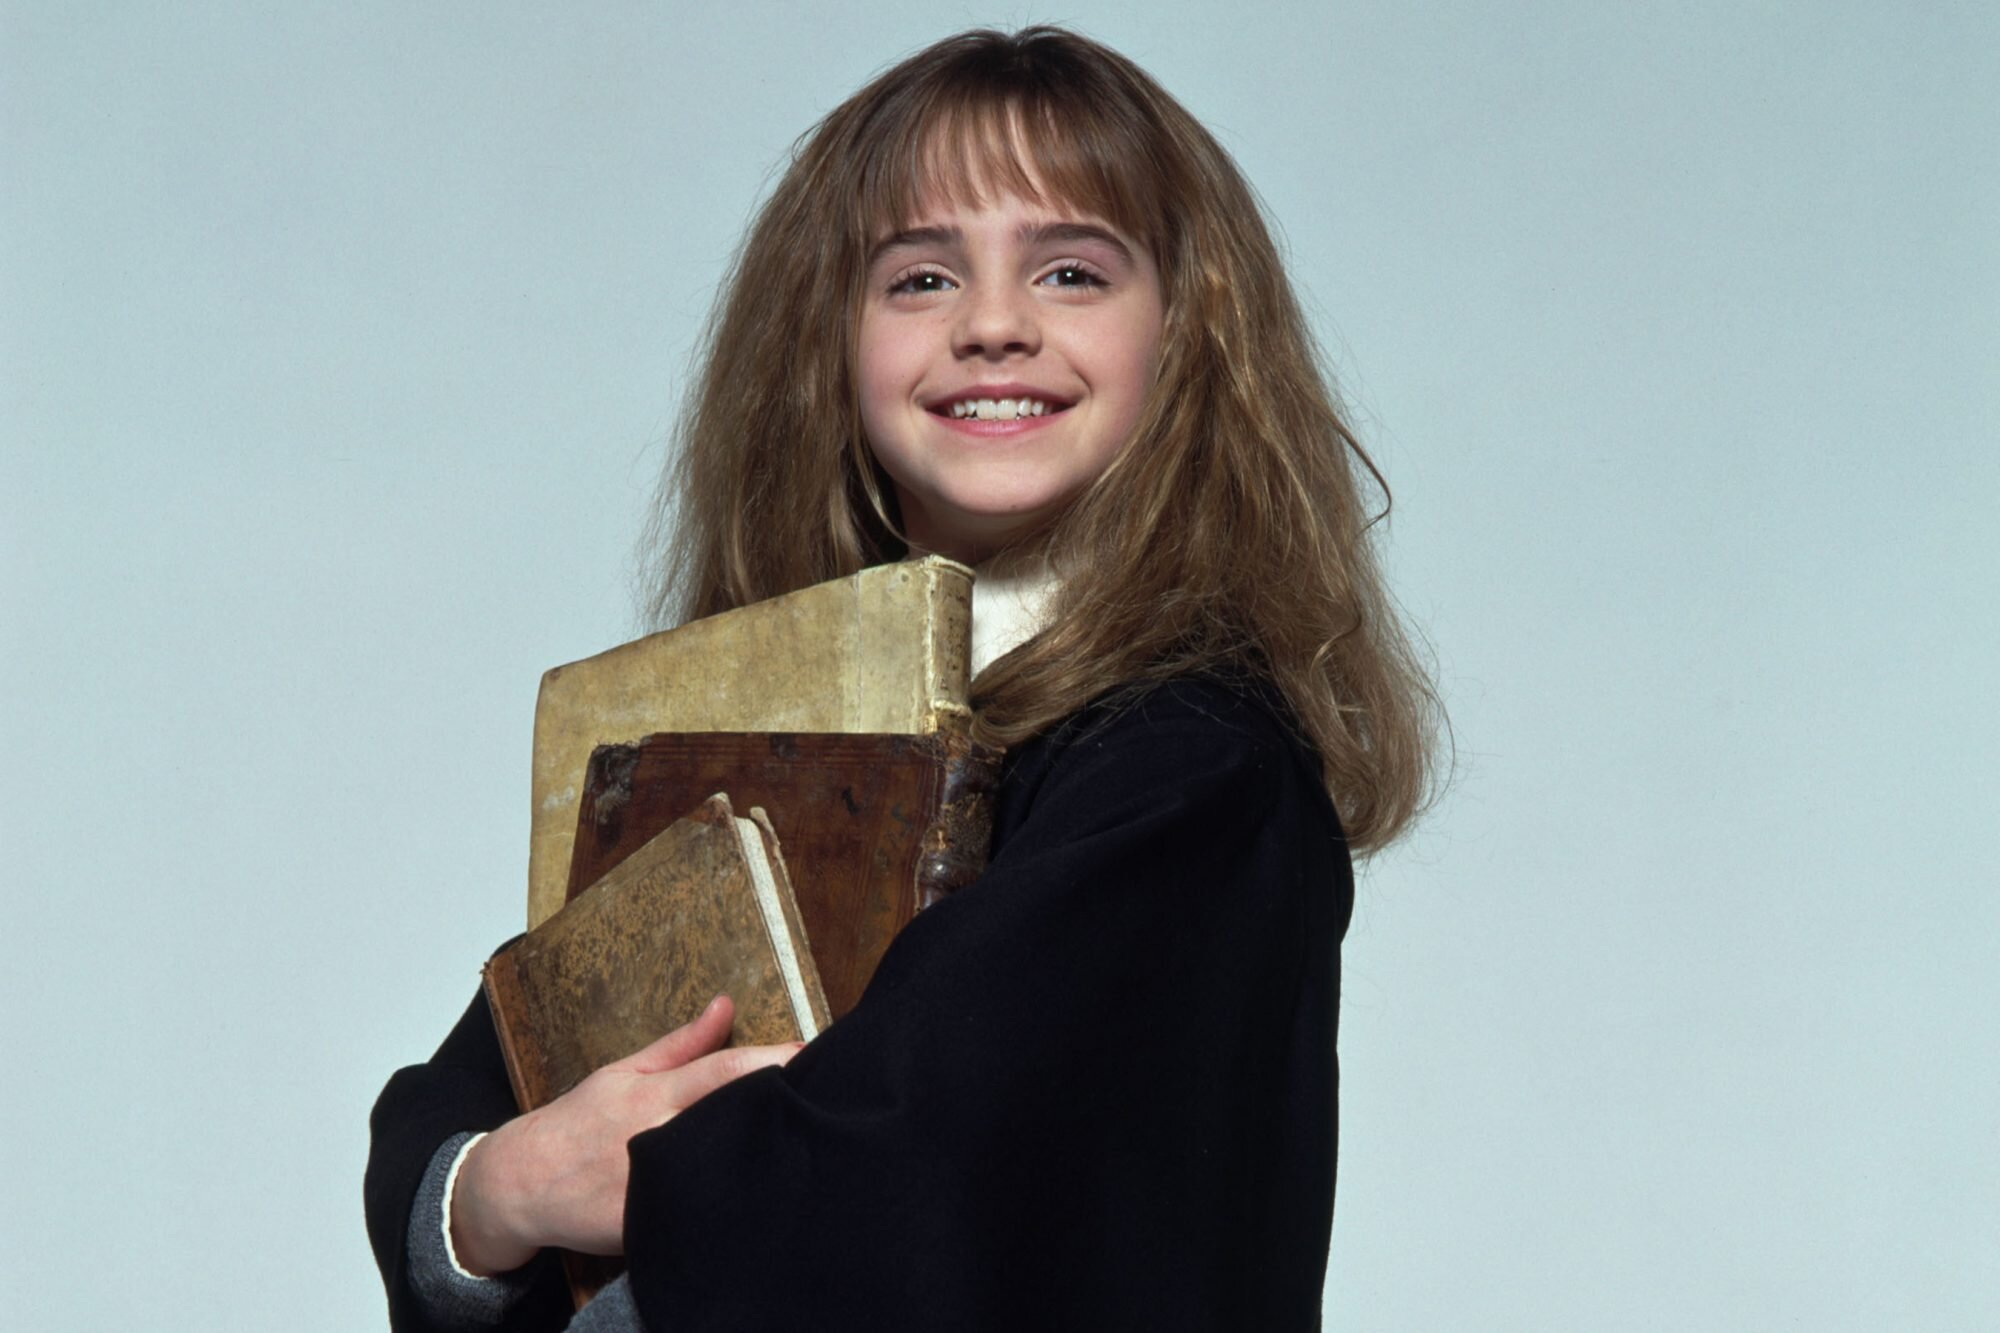 Celebrate Hermione S Birthday With Emma Watson S Most Powerful Quotes About Feminism Ew Com